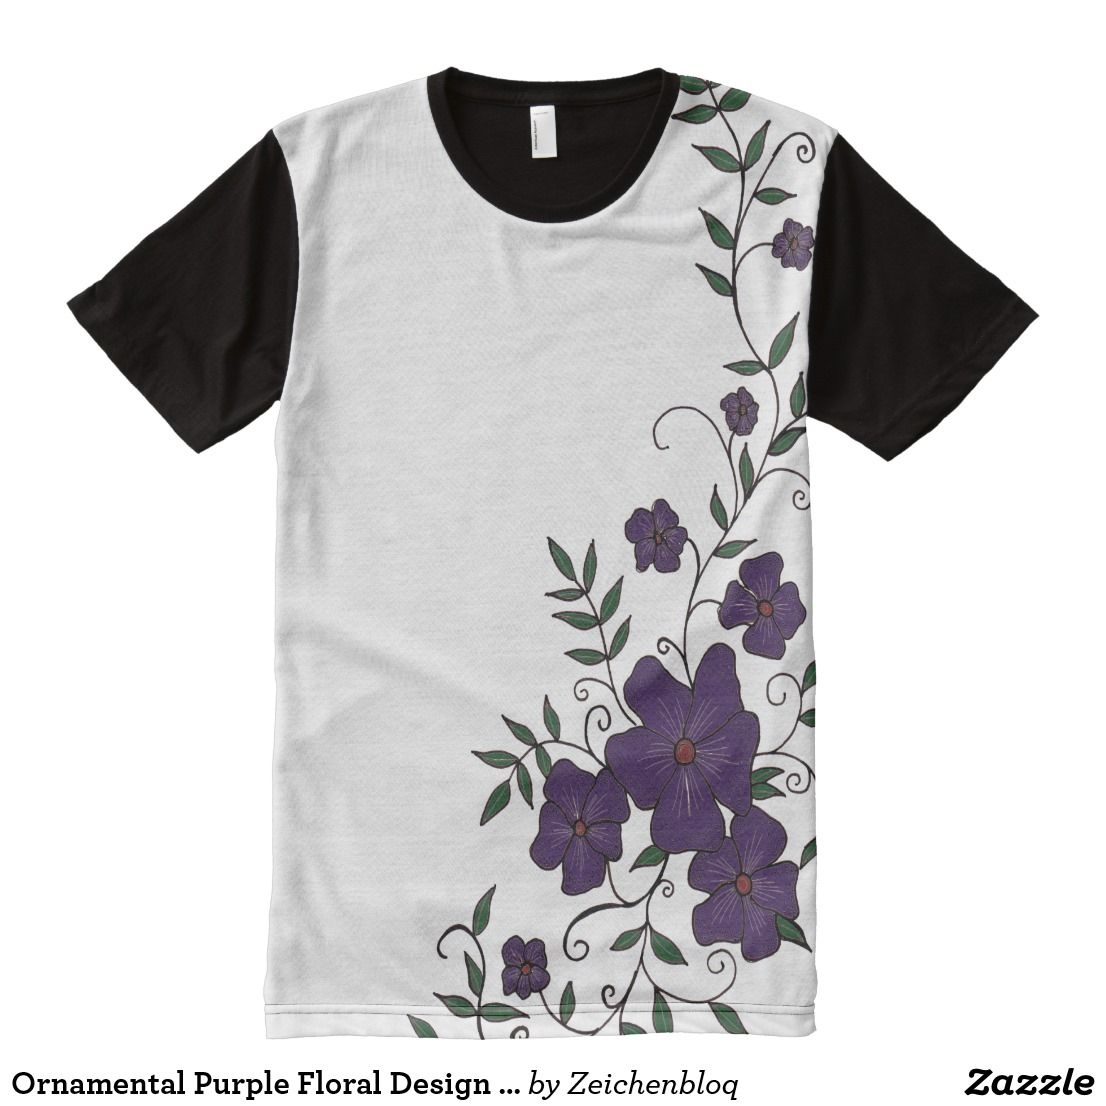 Ornamental Purple Floral Design T Shirt Zeichenbloq Zazzle